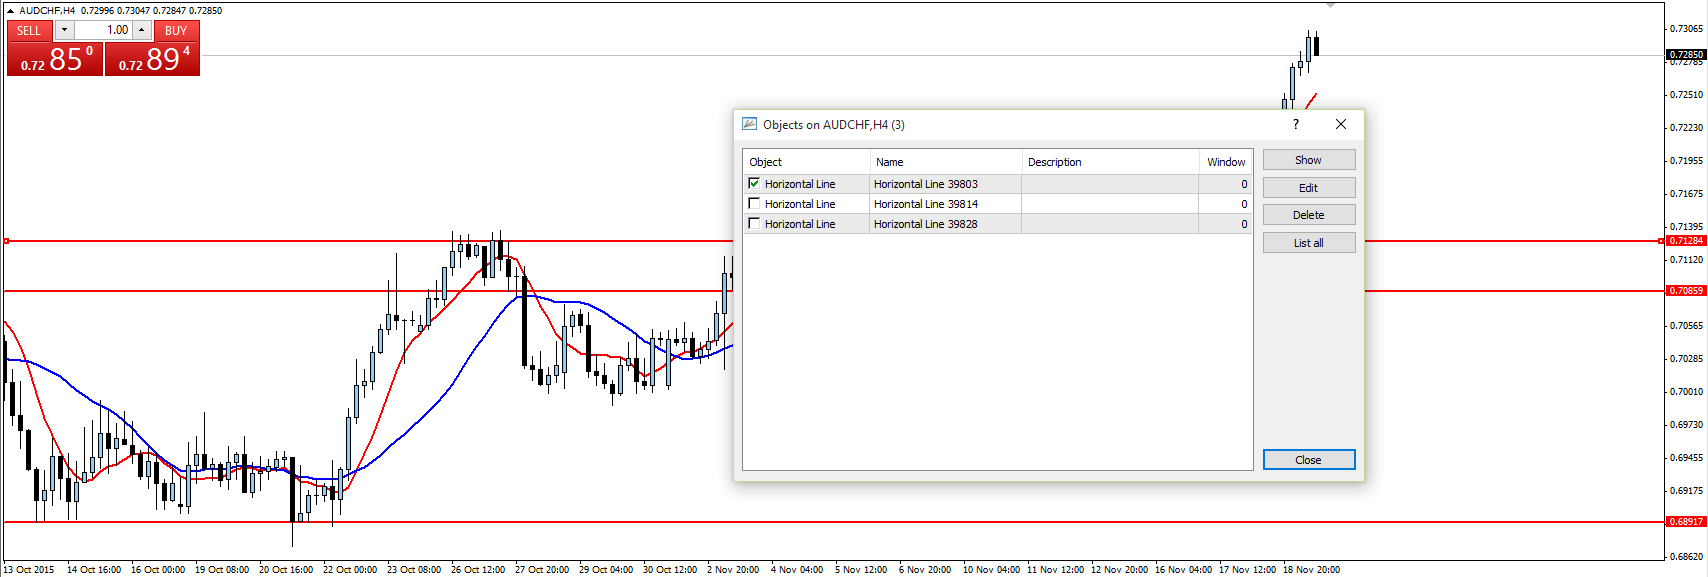 MetaTrader 4 - Tutorial 12